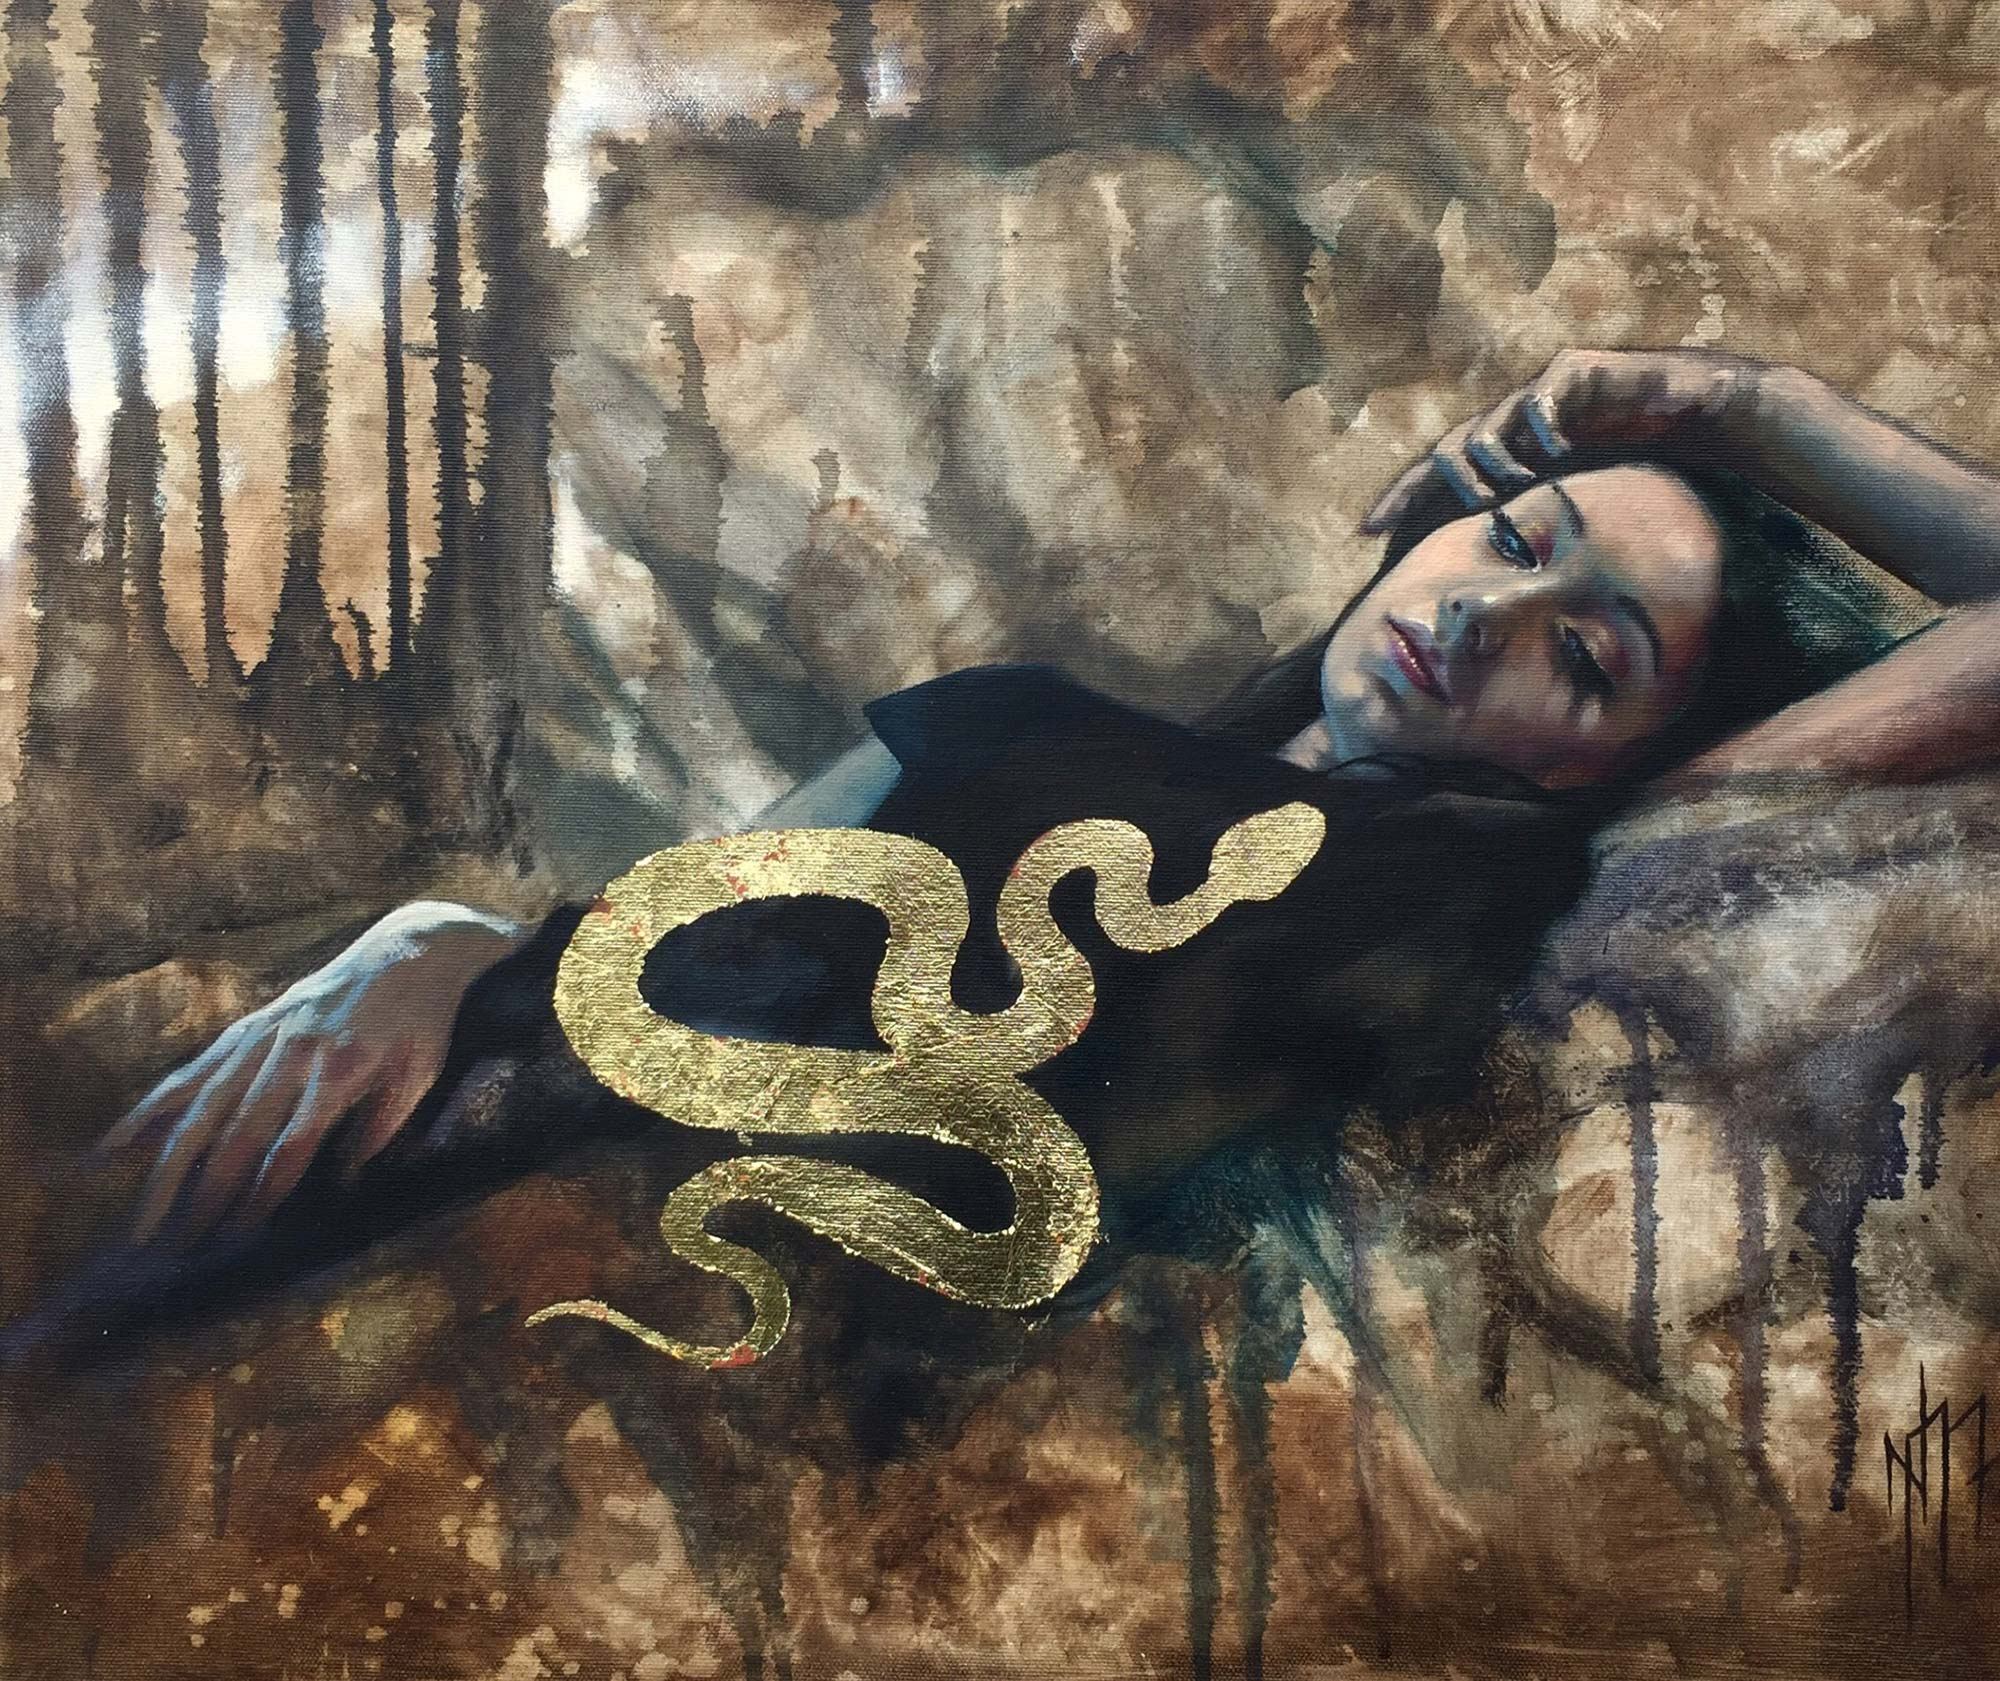 Nick Morte - Golden Serpent